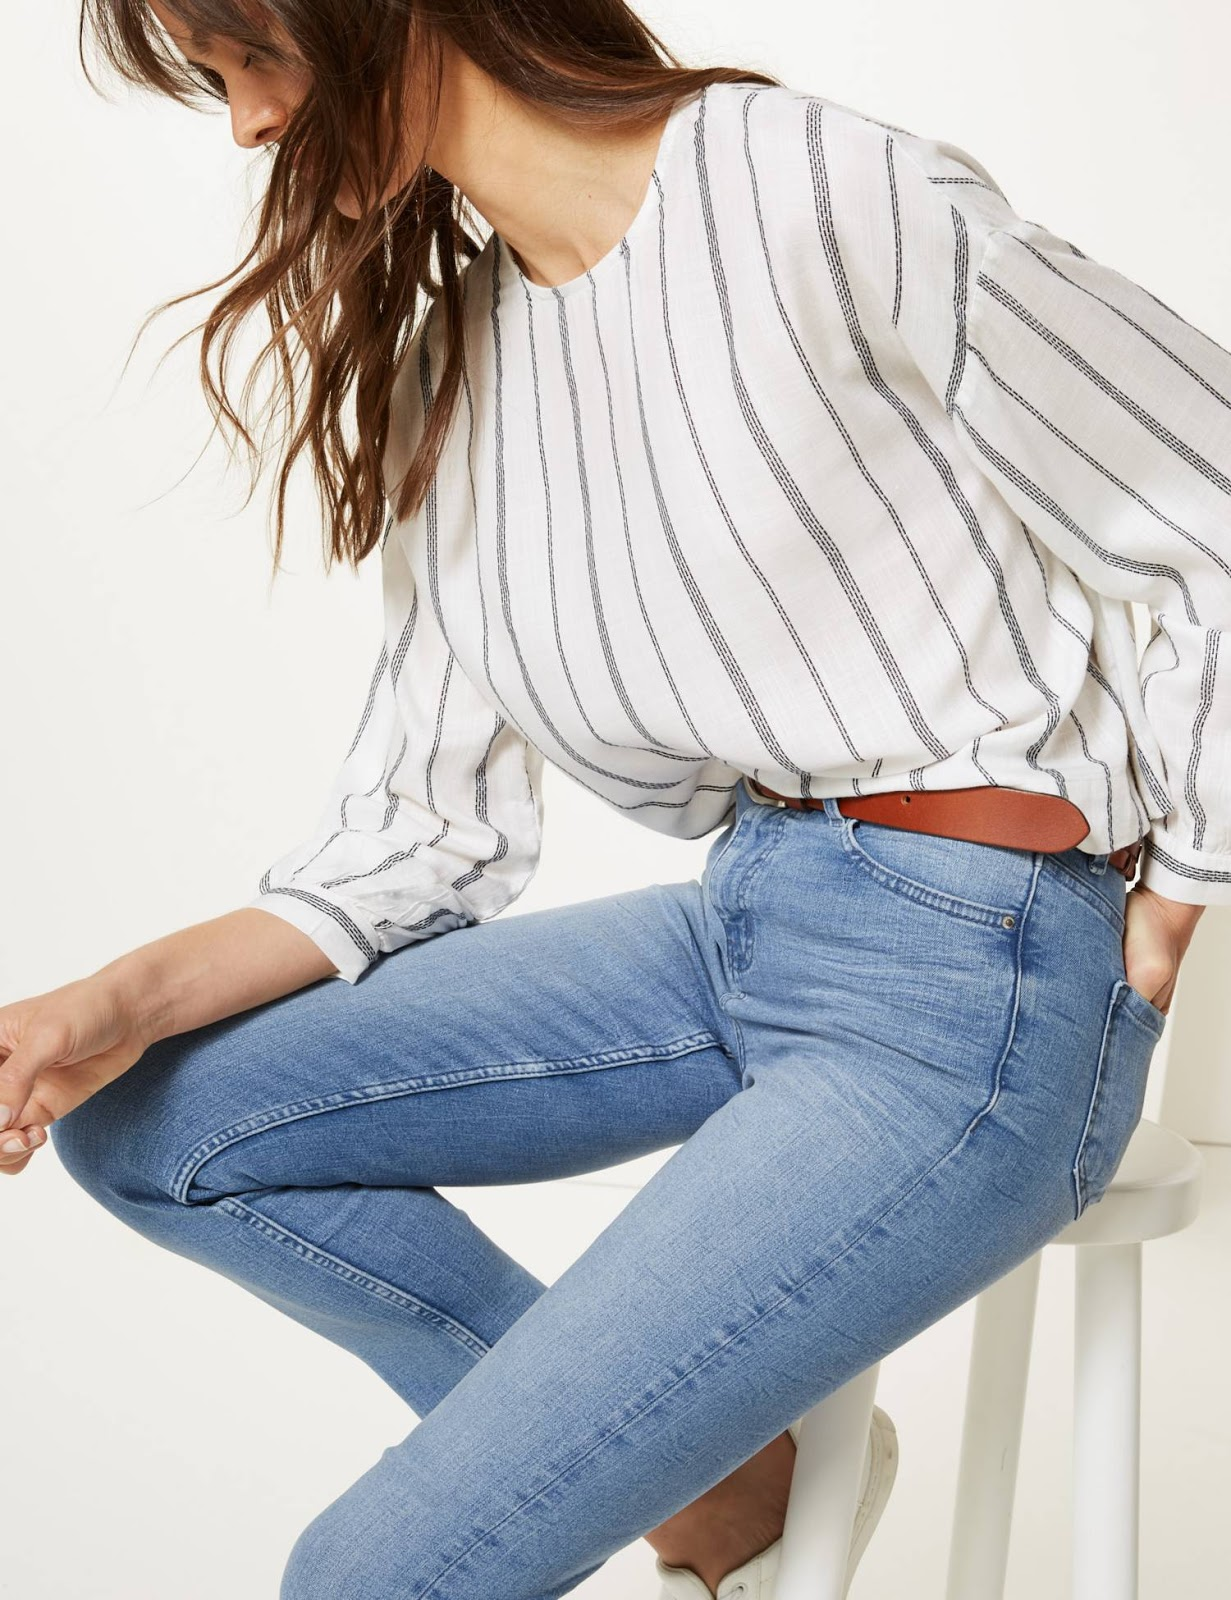 marks and spencer lily slim ankle grazer jeans